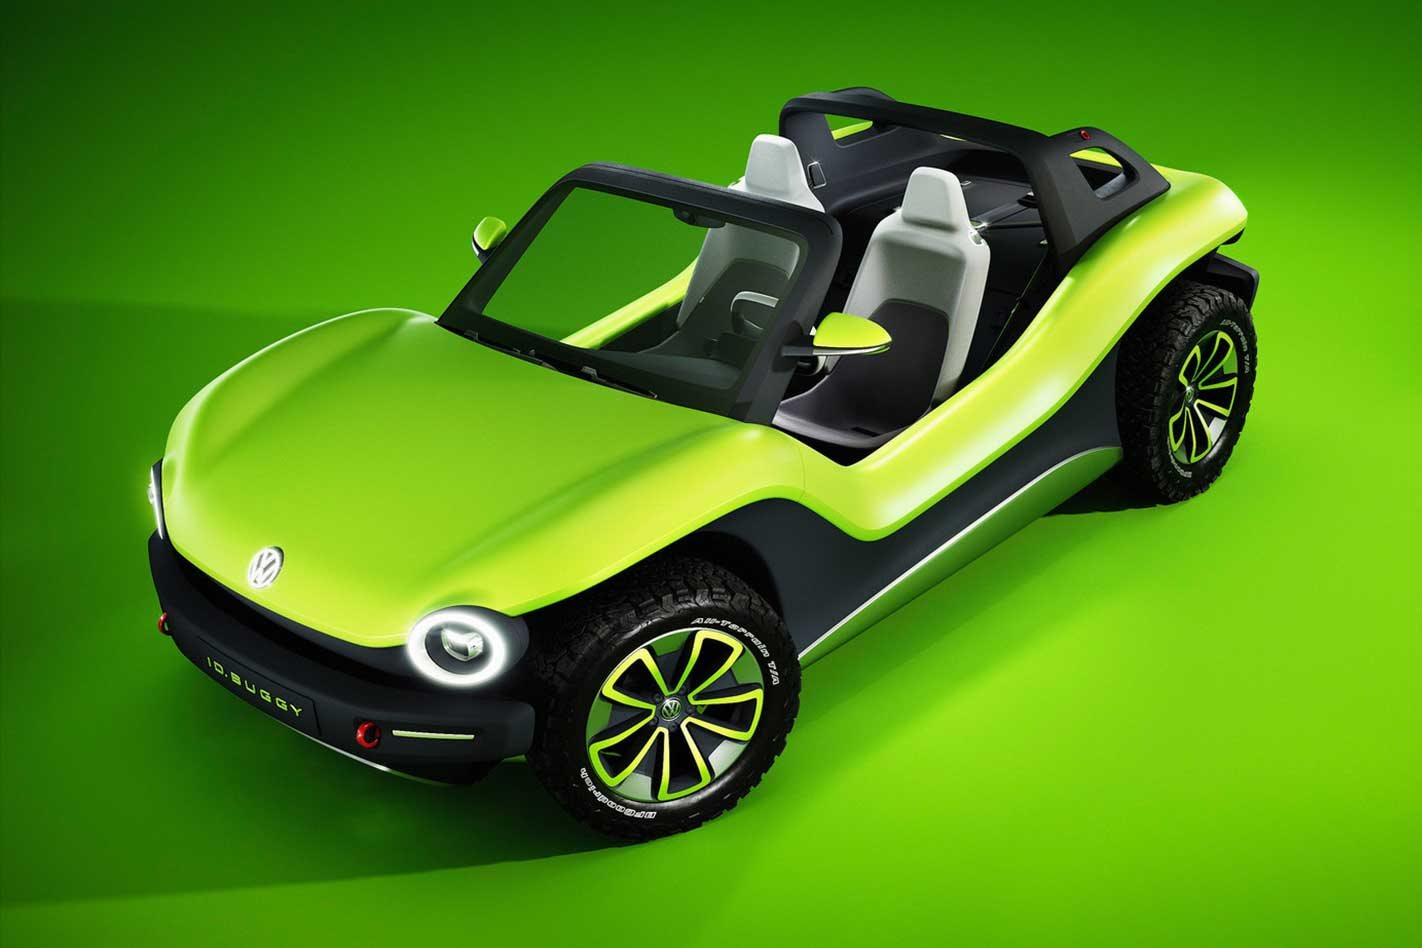 Electric Volkswagen ID BUGGY concept revealed at 2019 Geneva Motor Show